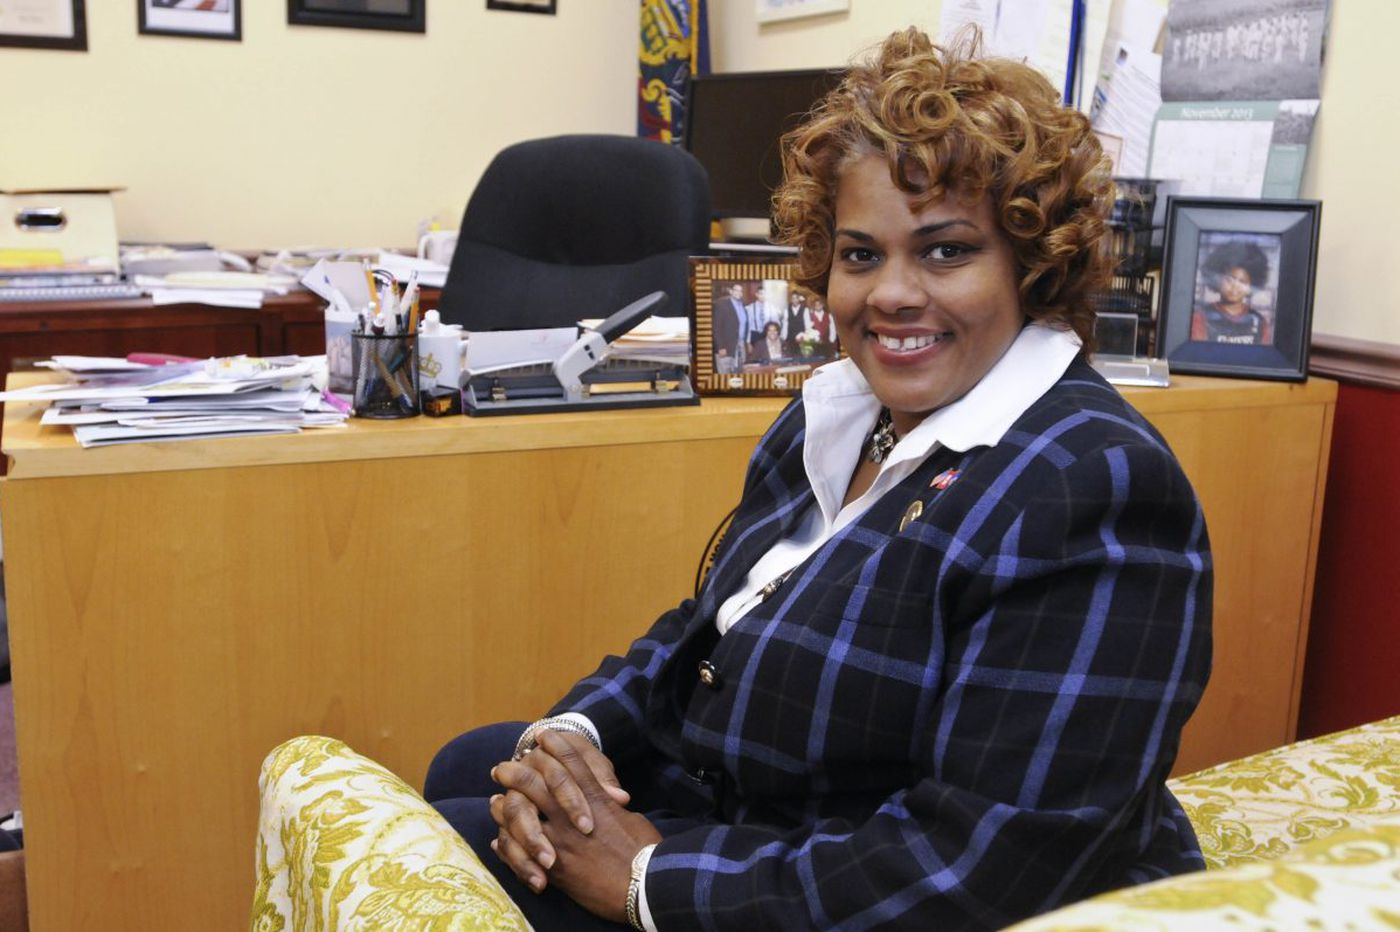 Police: State Rep. Margo Davidson did 'hit and run'